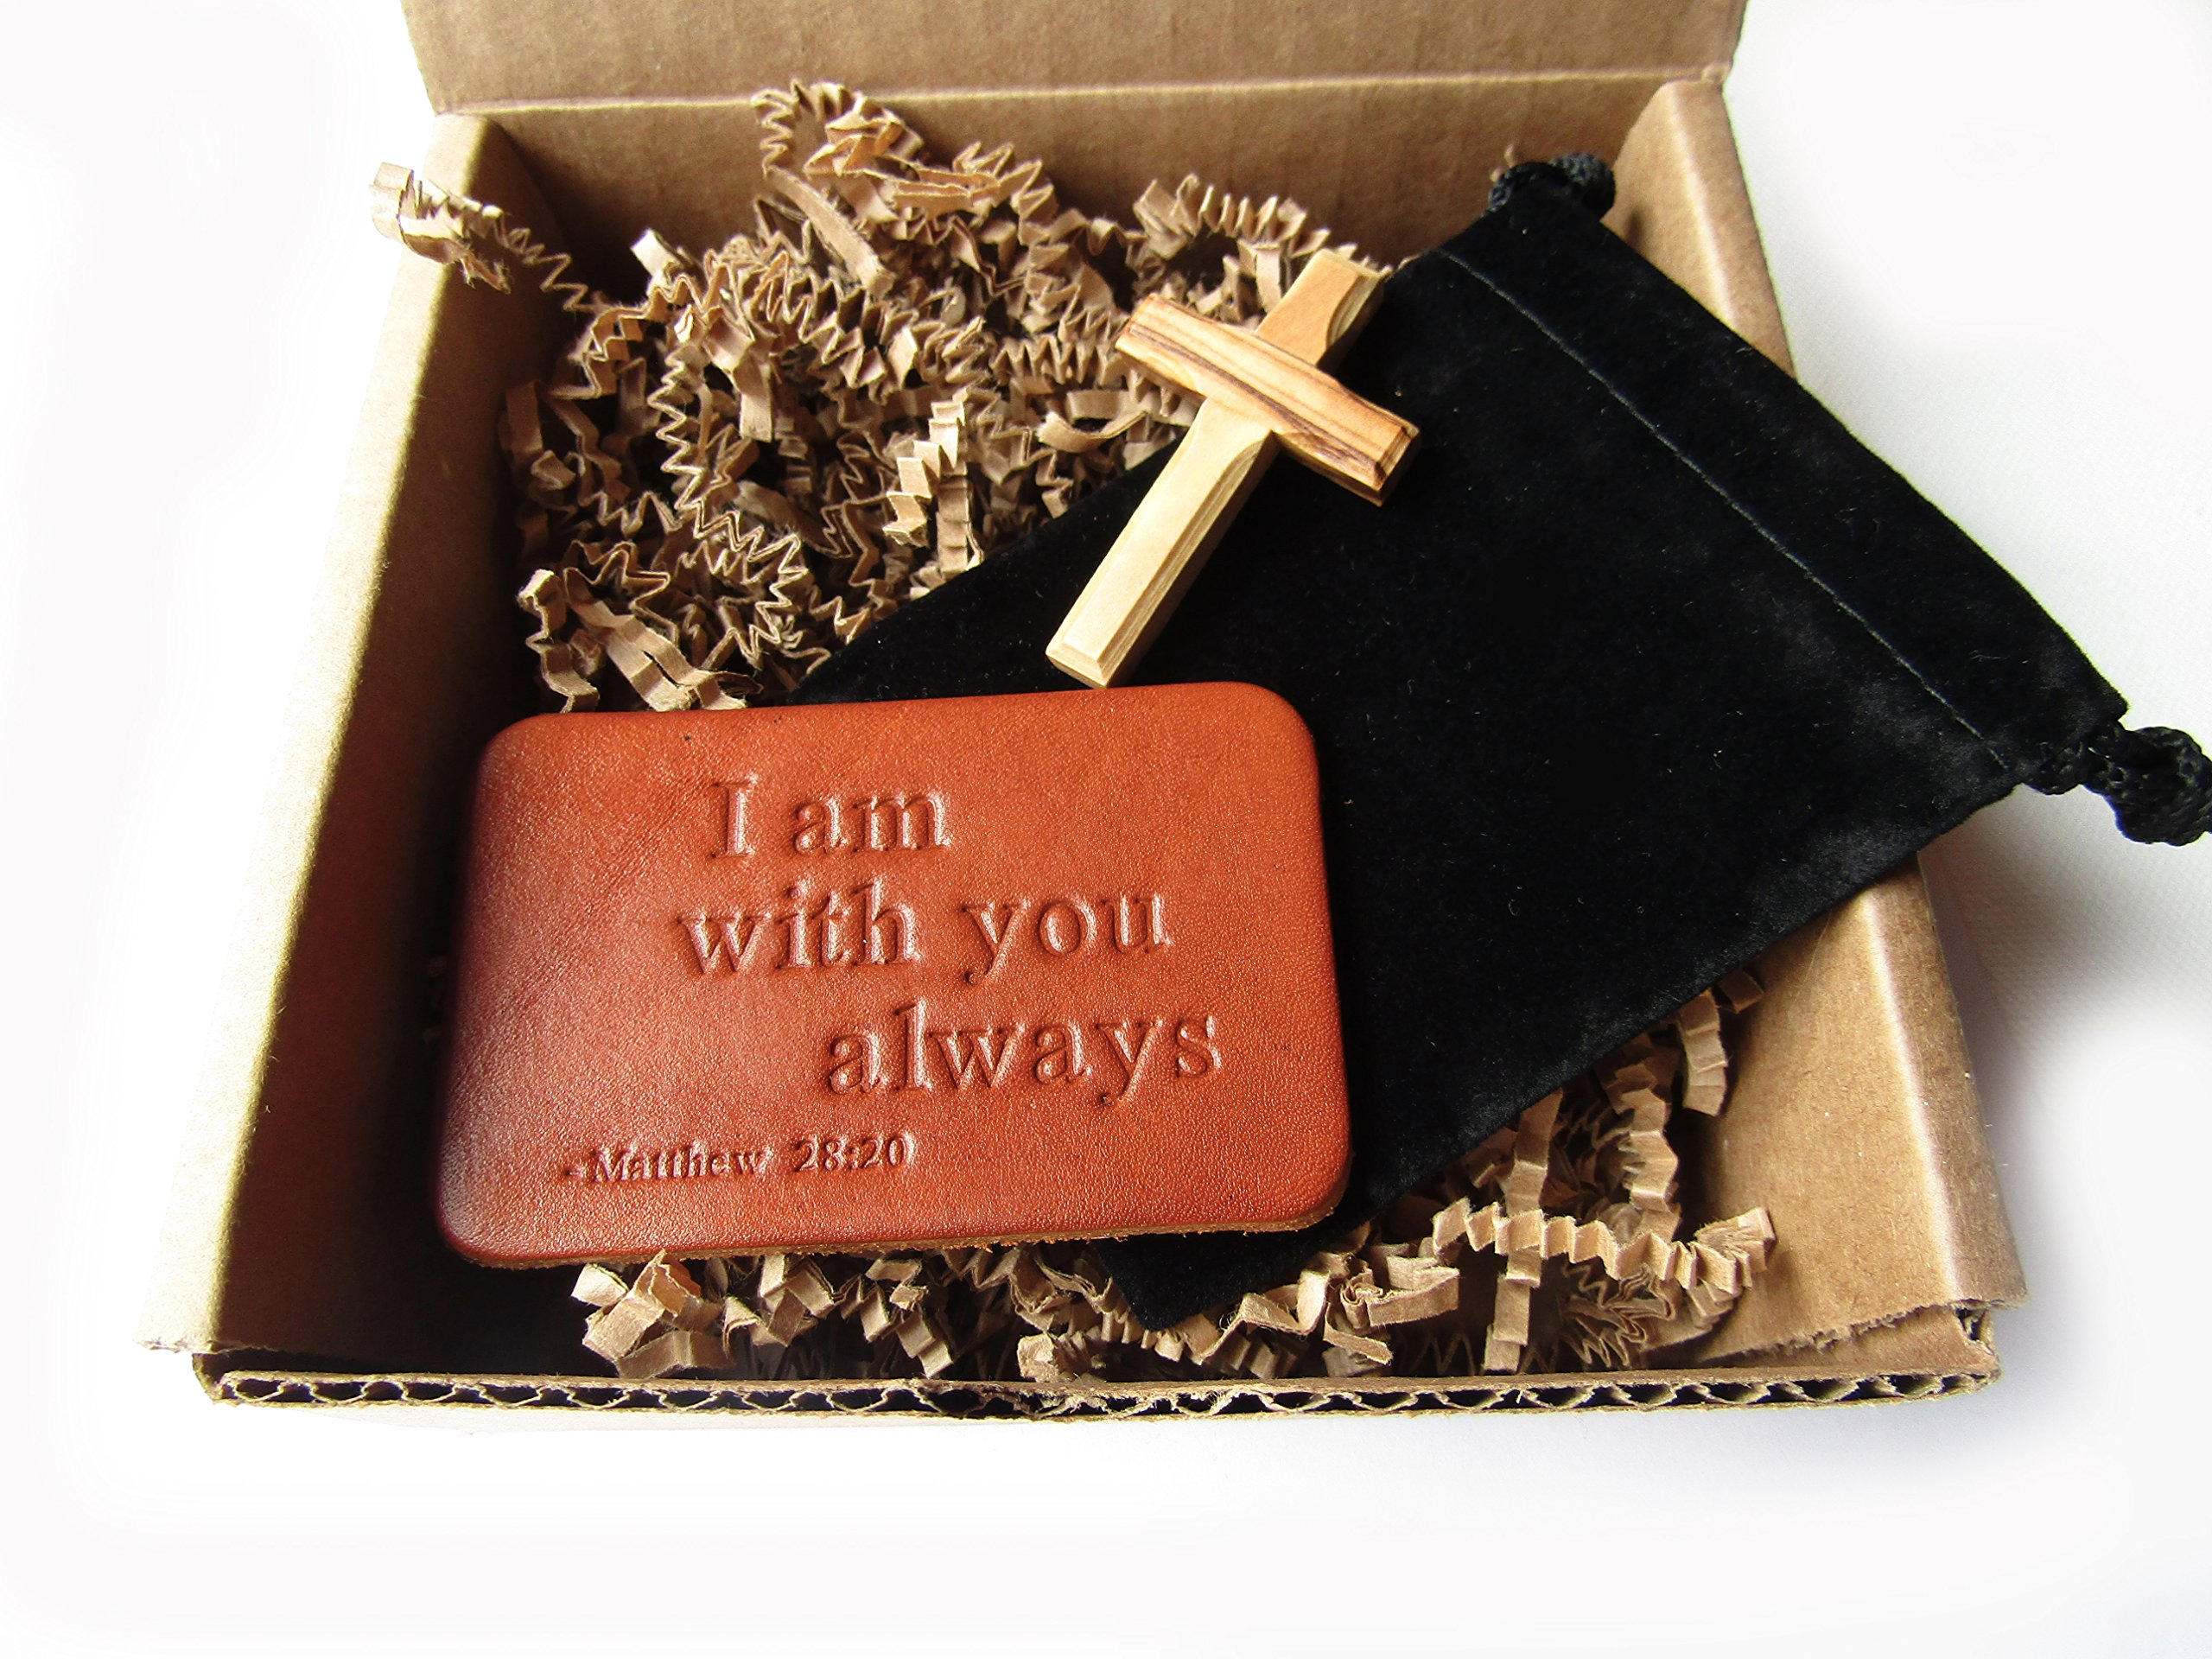 Twin Saints Christian Gift: I Am With You Always Leather Wallet Card with Bible Verse and Pocket Cross. Perfect for Confirmation, First Holy Communion or Adult Baptism.